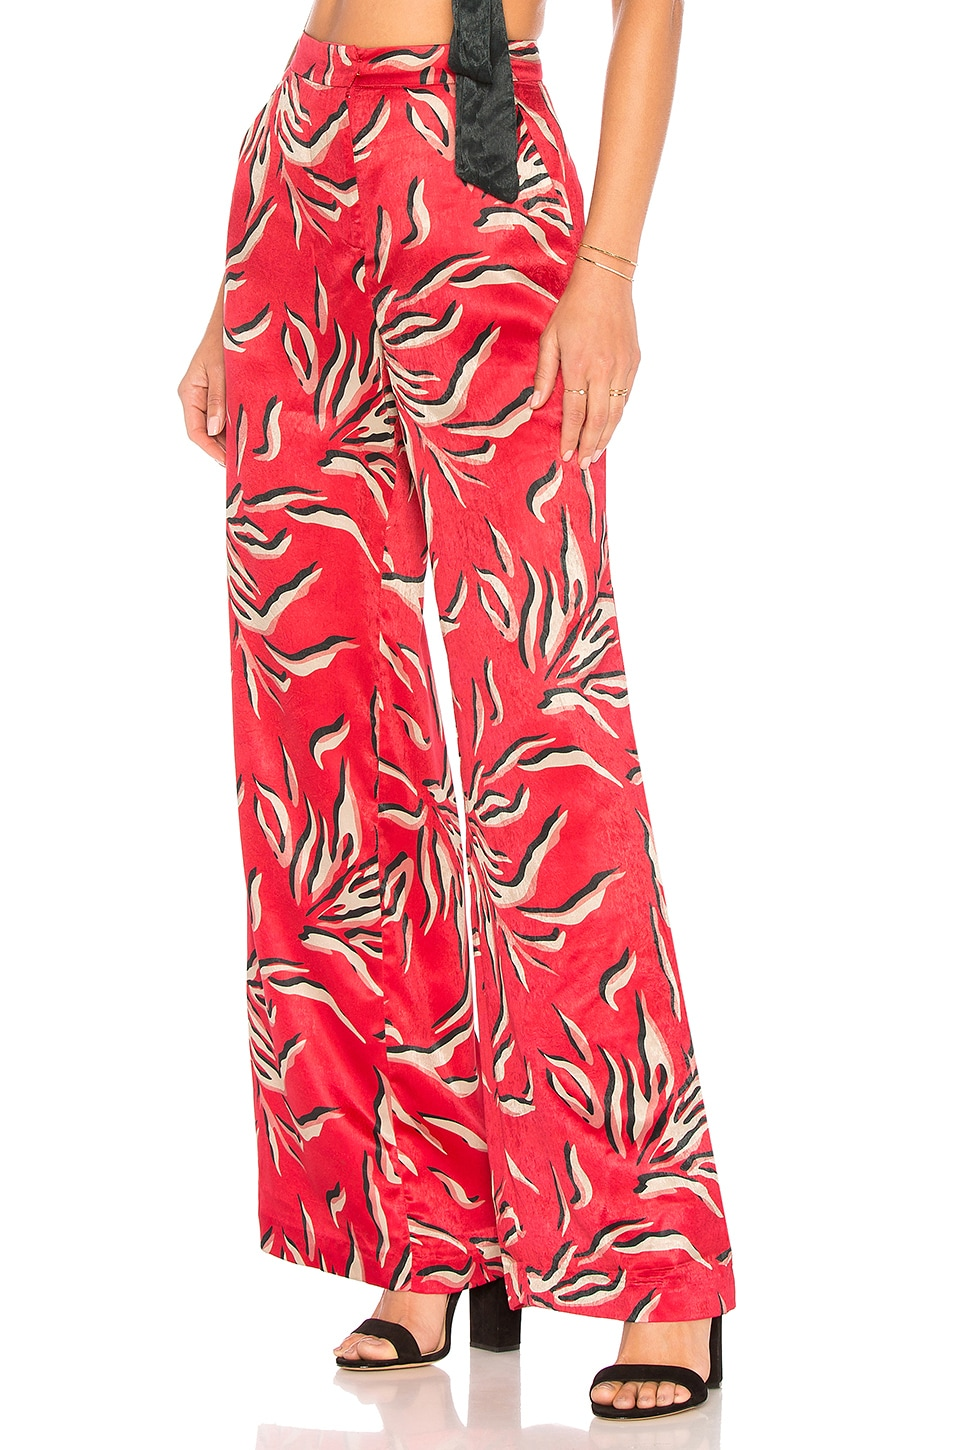 House of Harlow 1960 x REVOLVE Mona Pant in Fond Print